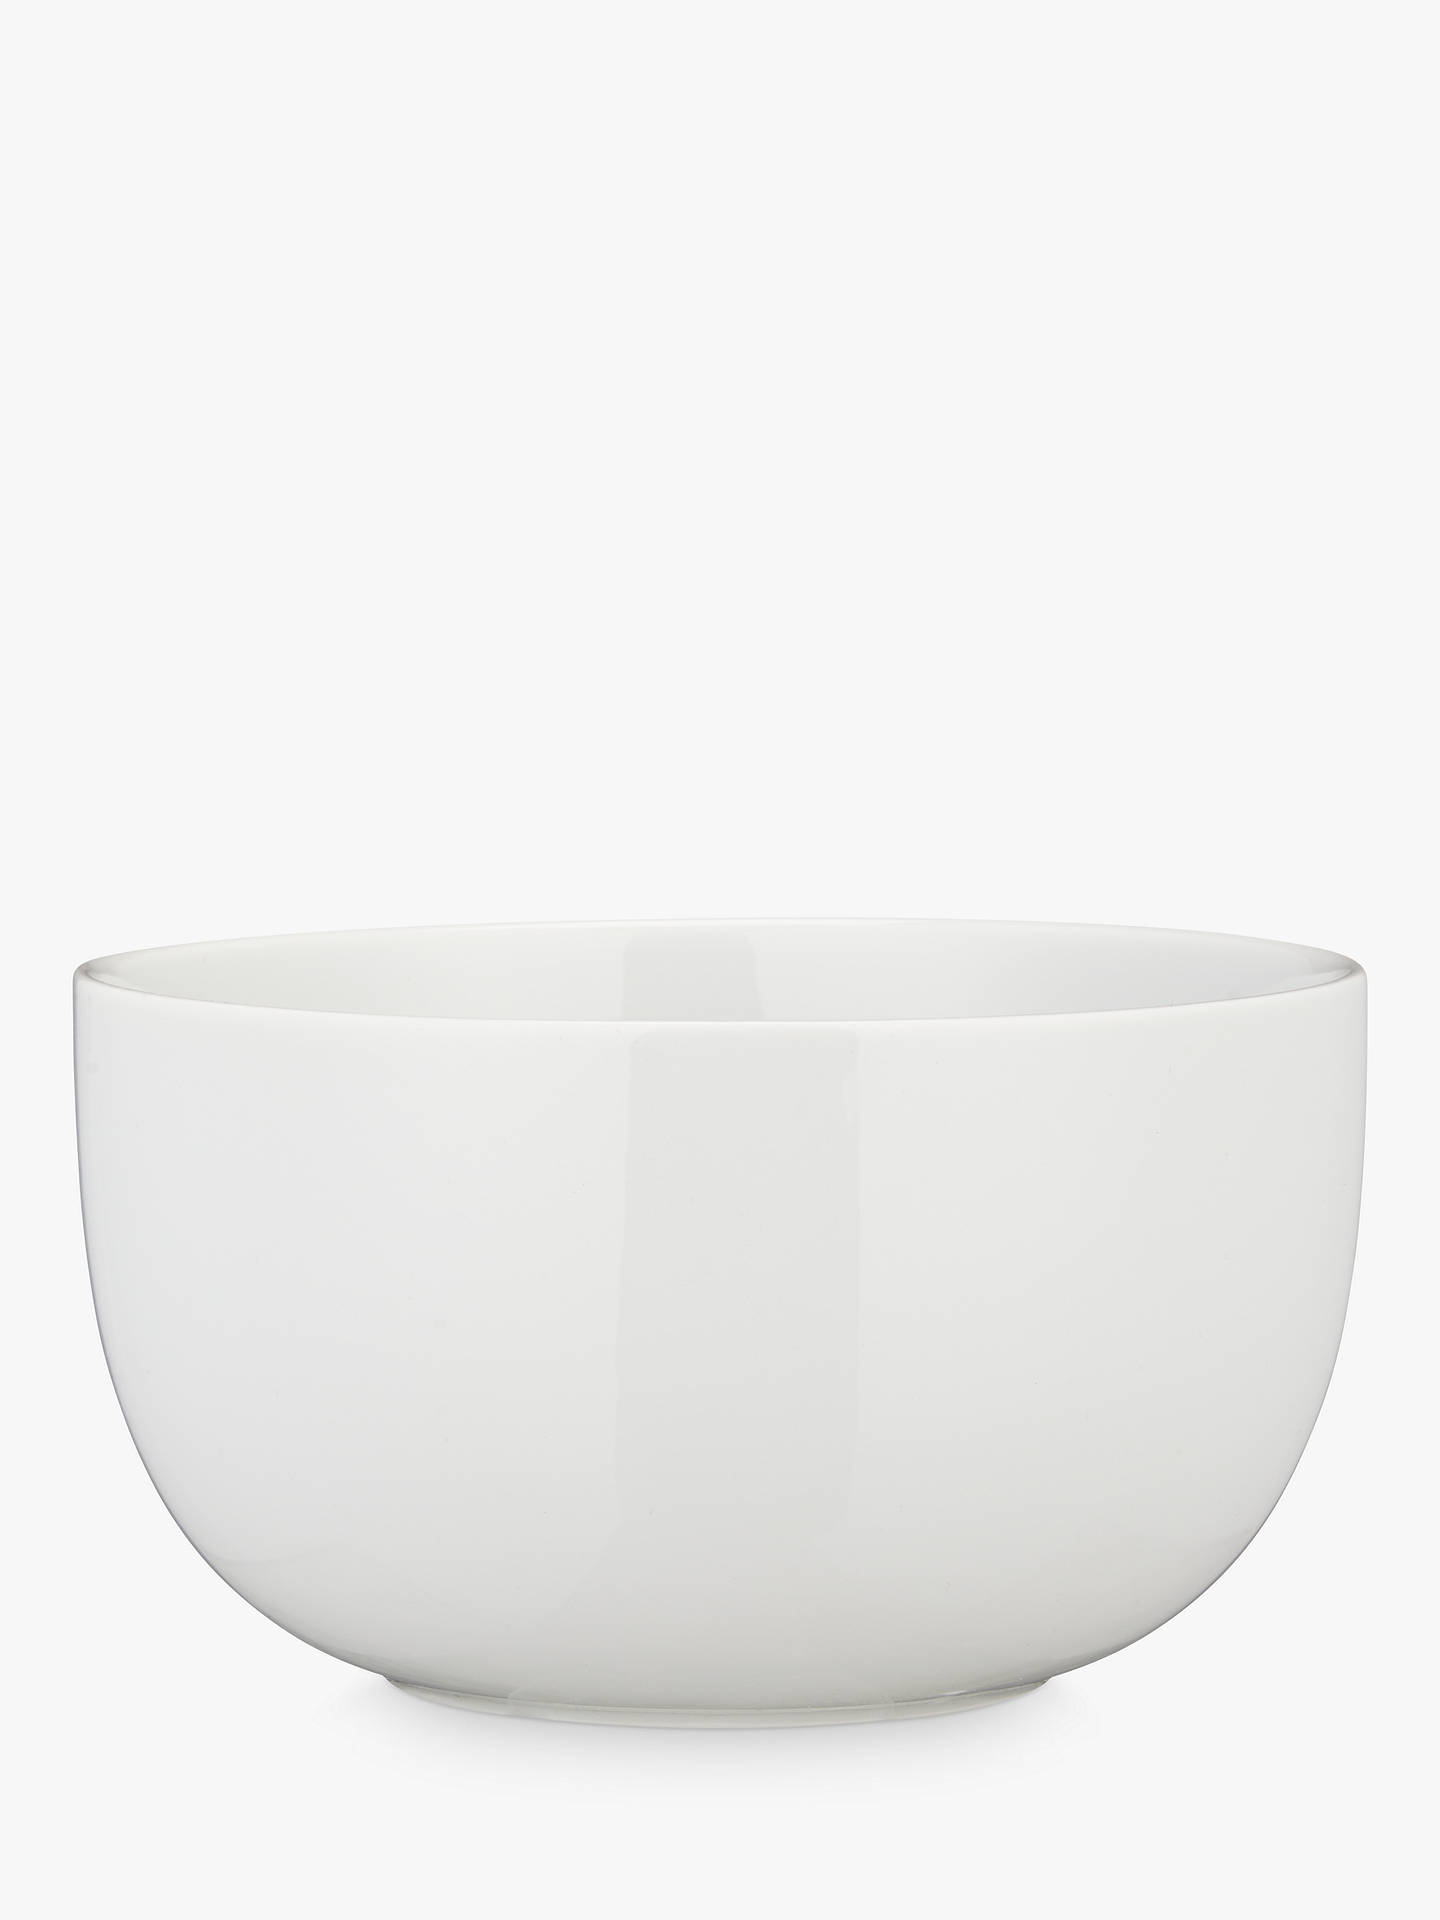 BuyHouse by John Lewis Eat 14.5cm Noodle Bowl, White Online at johnlewis.com